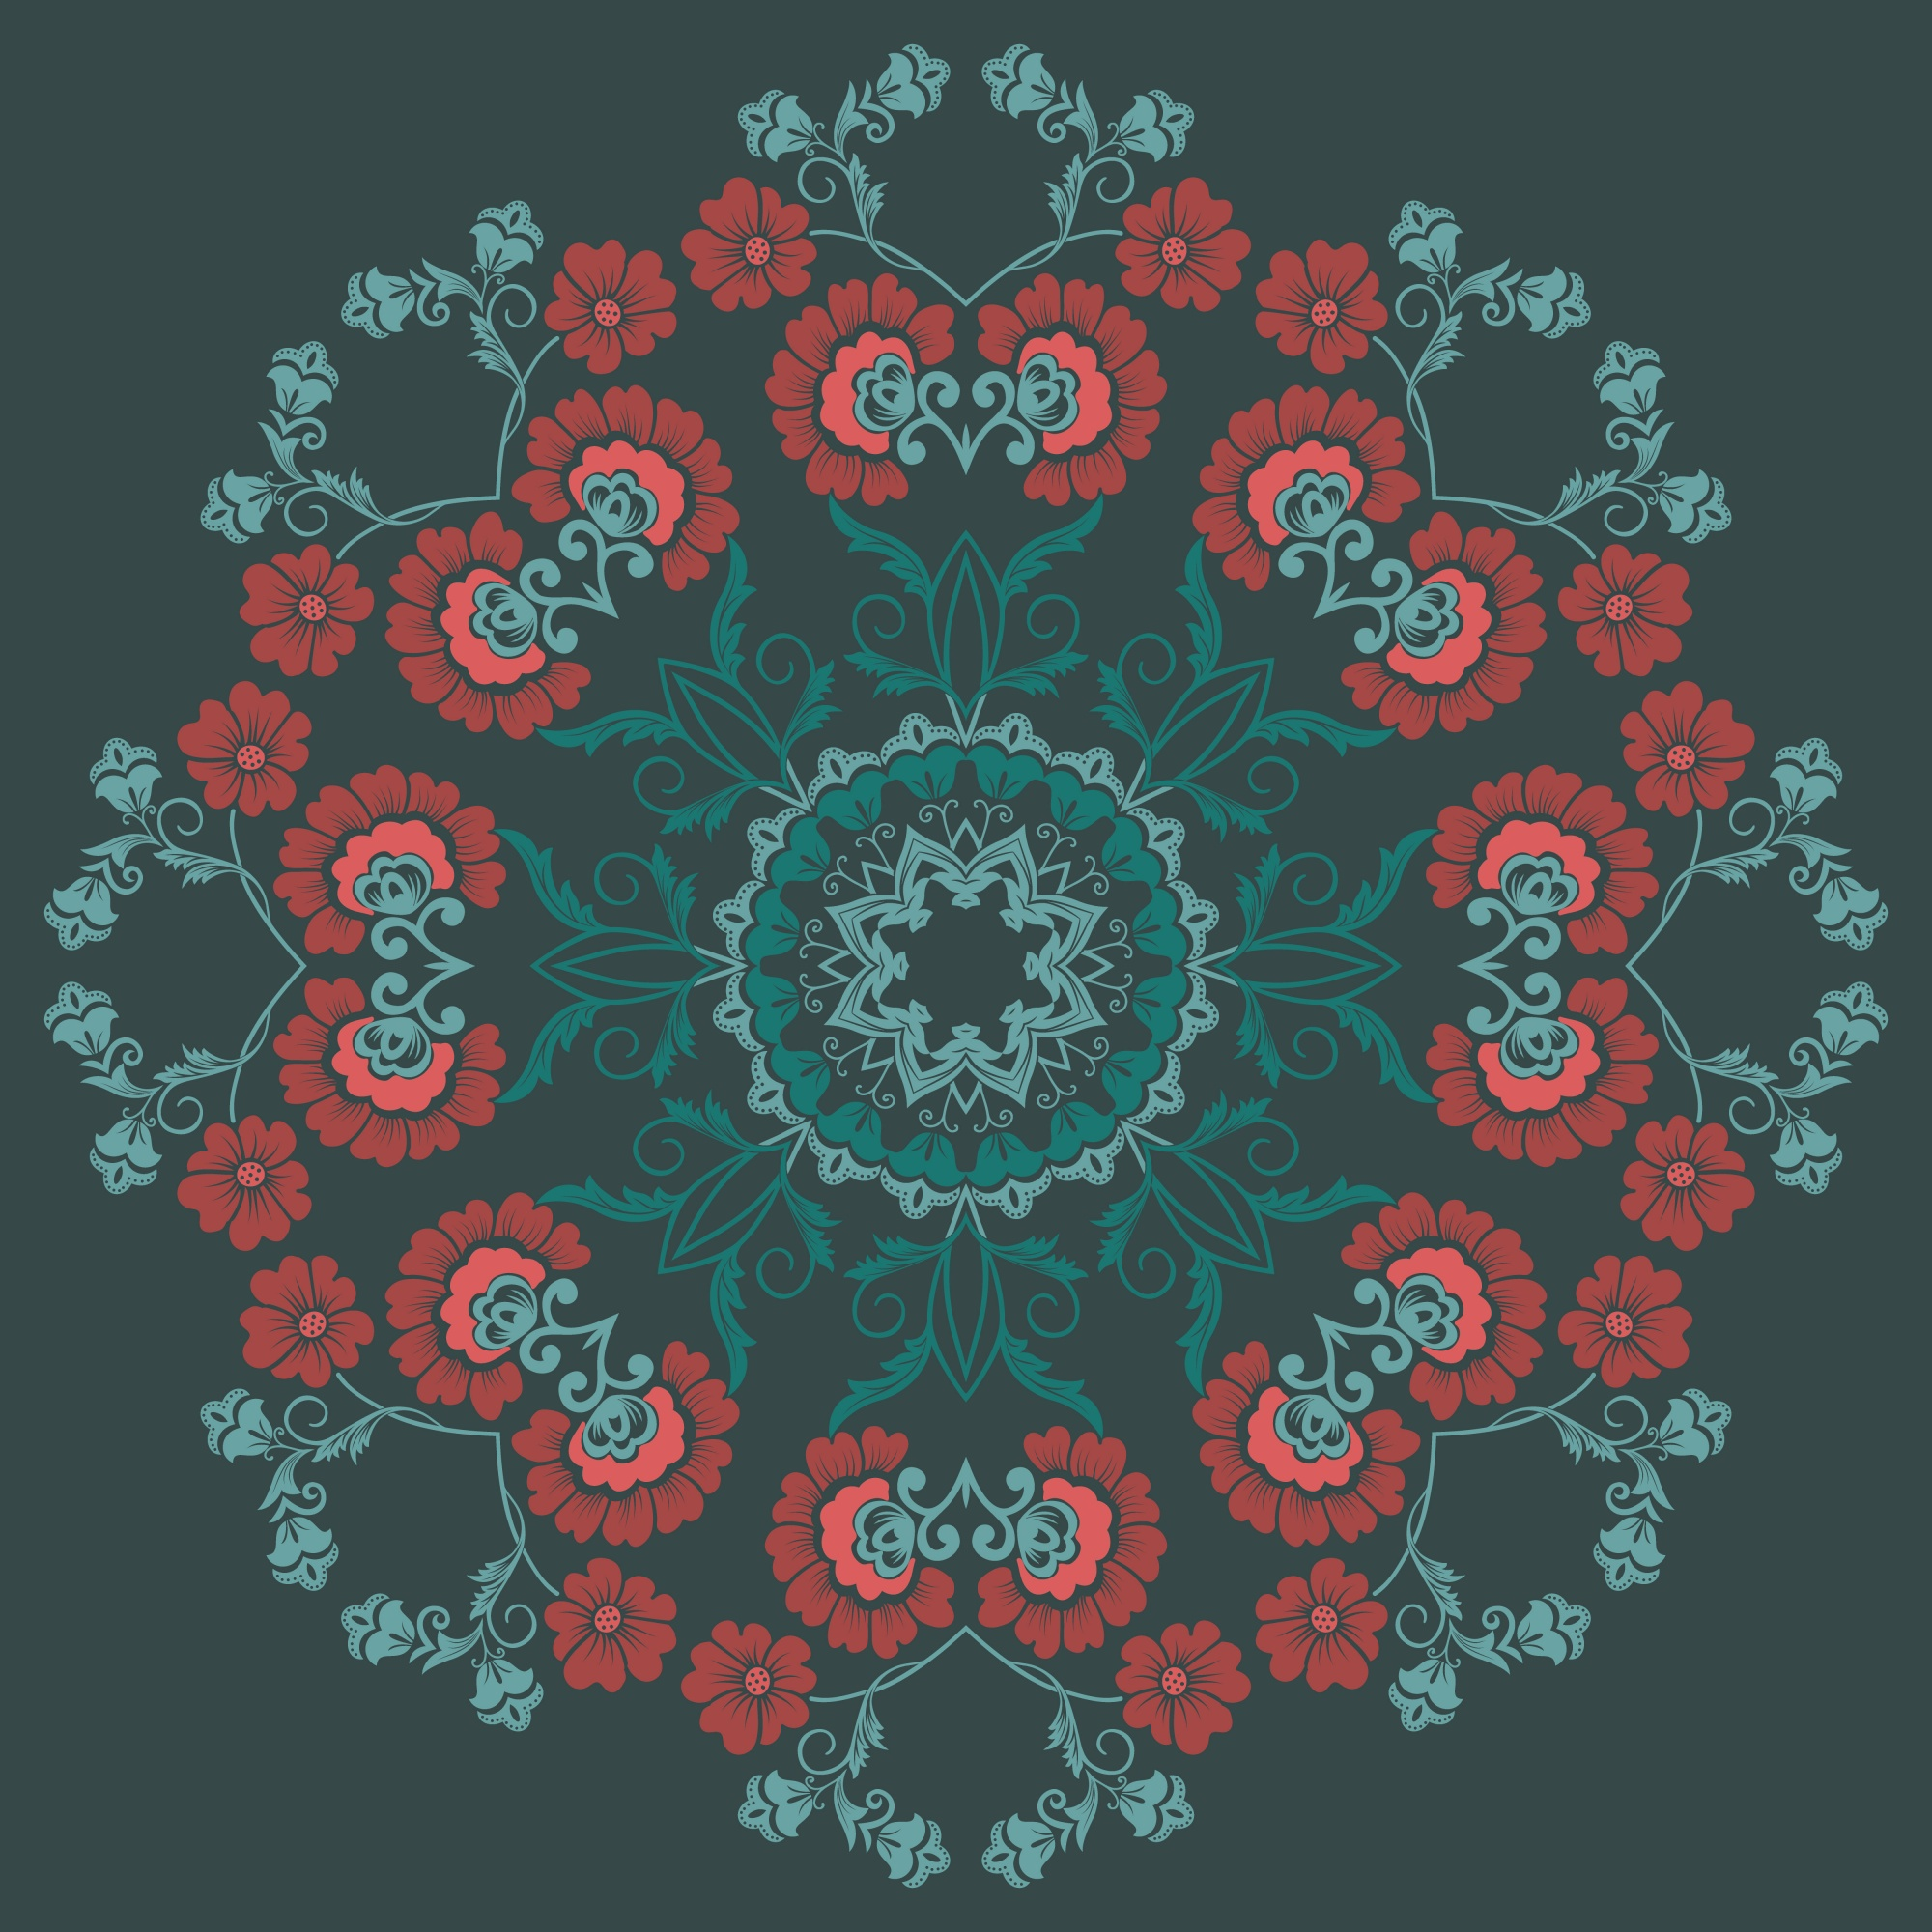 Lace round floral embroidery wallpaper